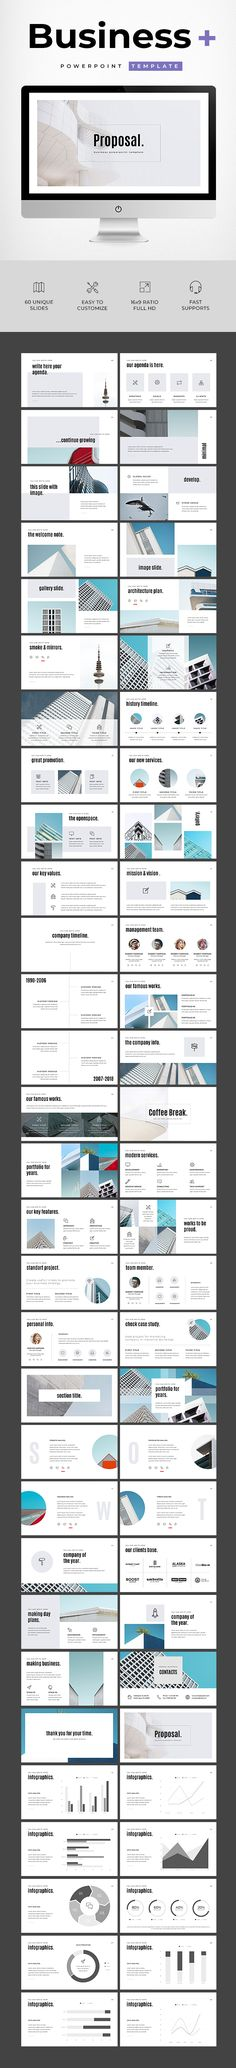 Business Powerpoint Template - 60 Unique Slides